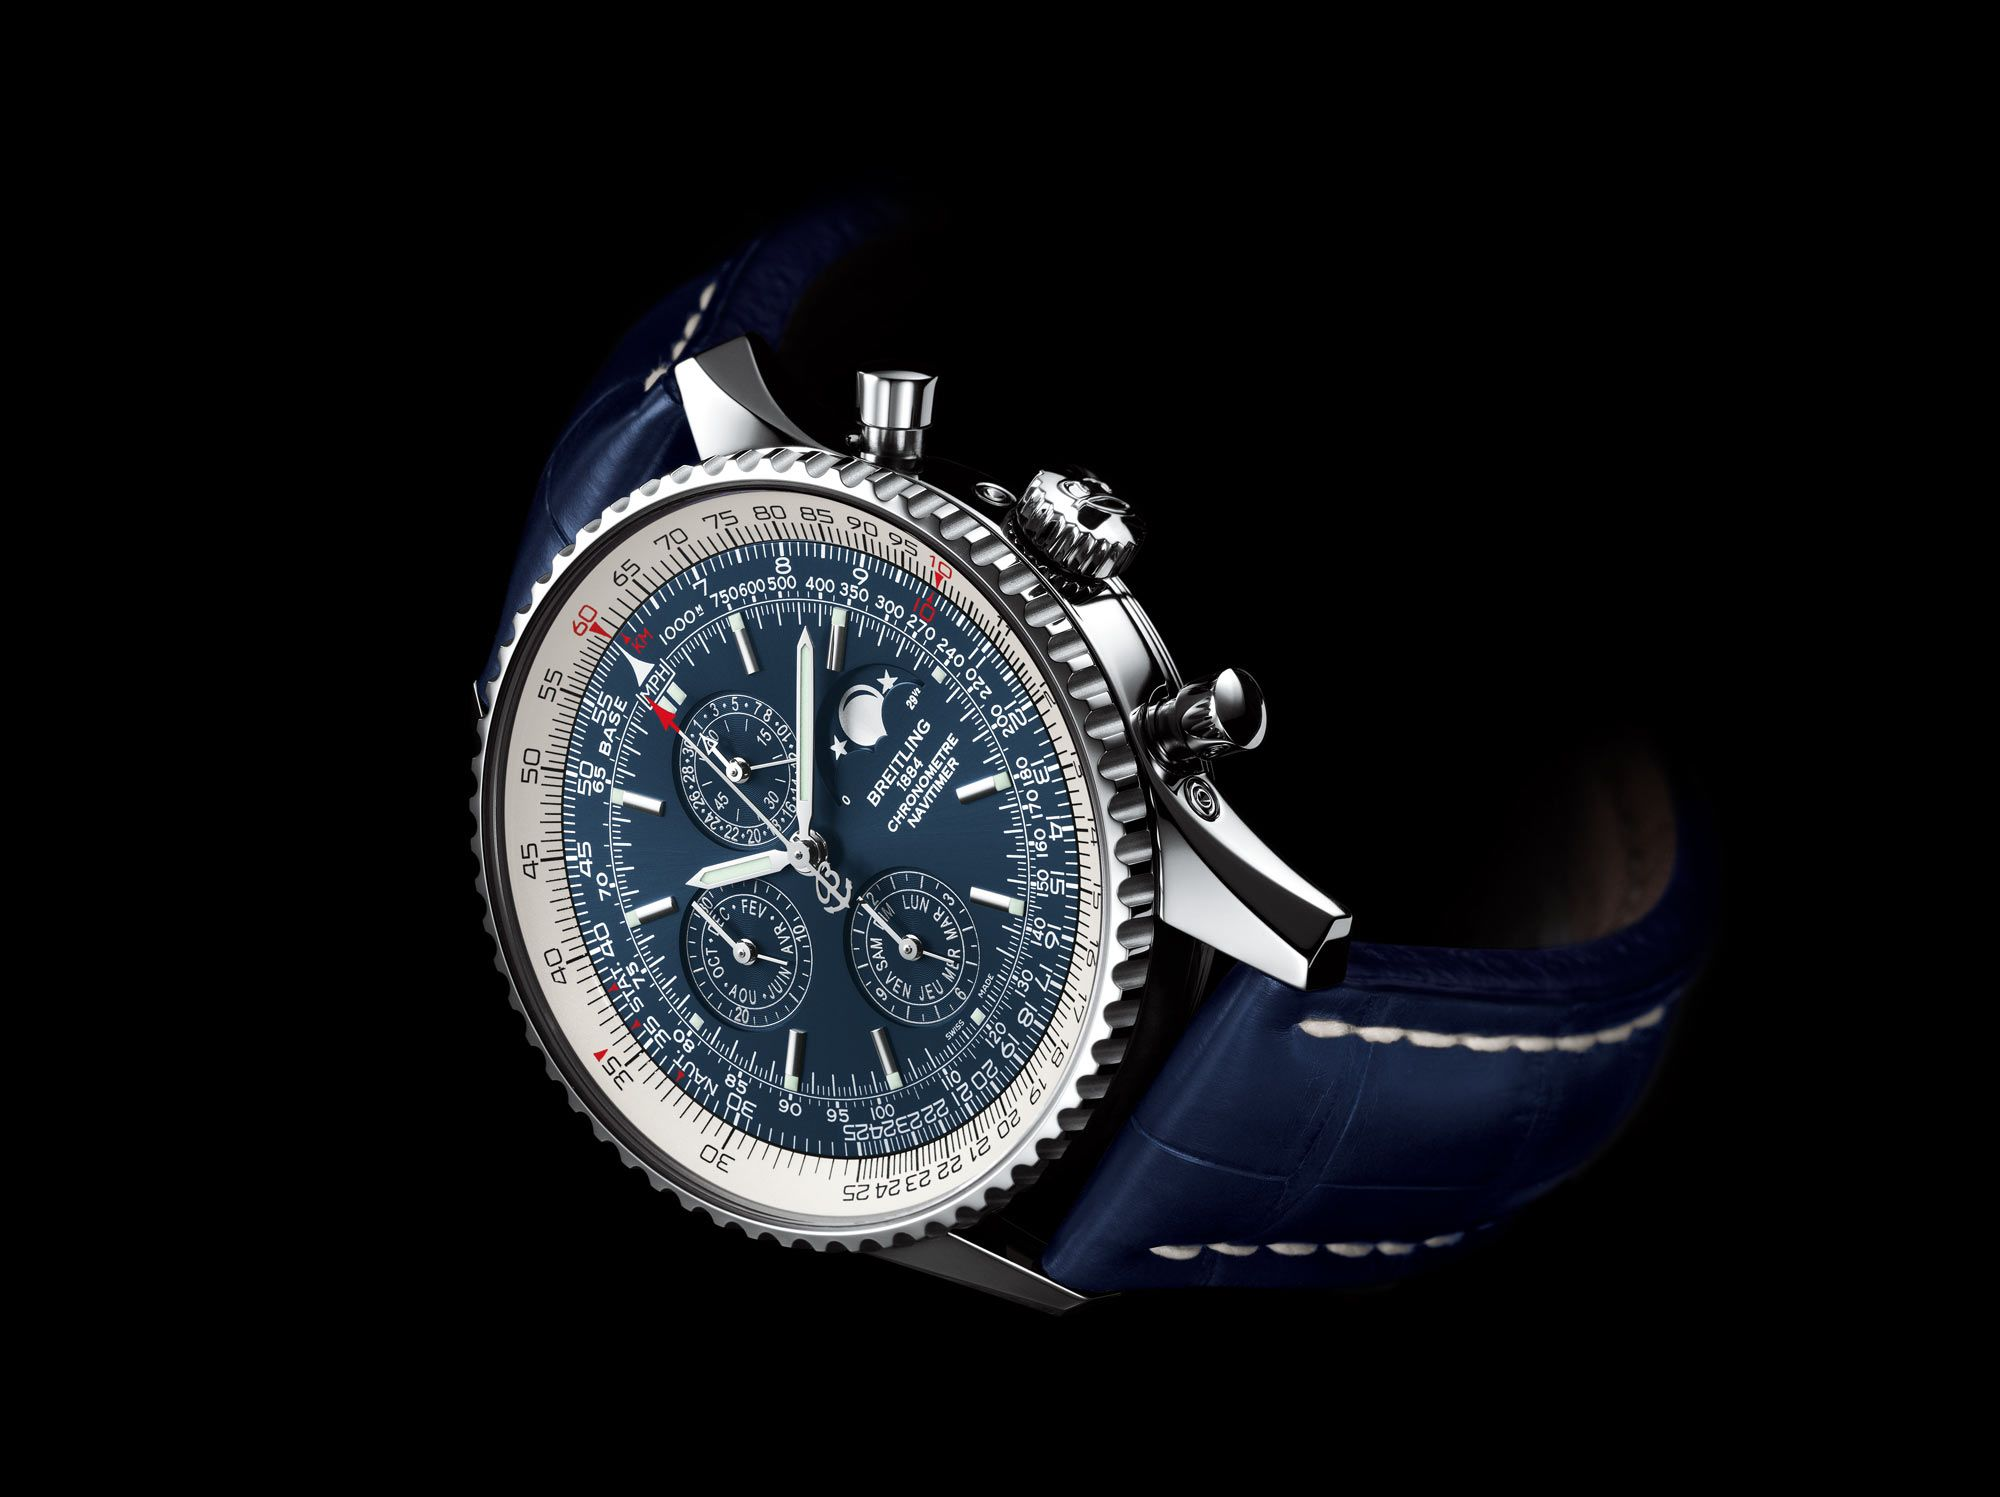 addca5f5ff4 Navitimer 1461 - Breitling - Instruments for Professionals